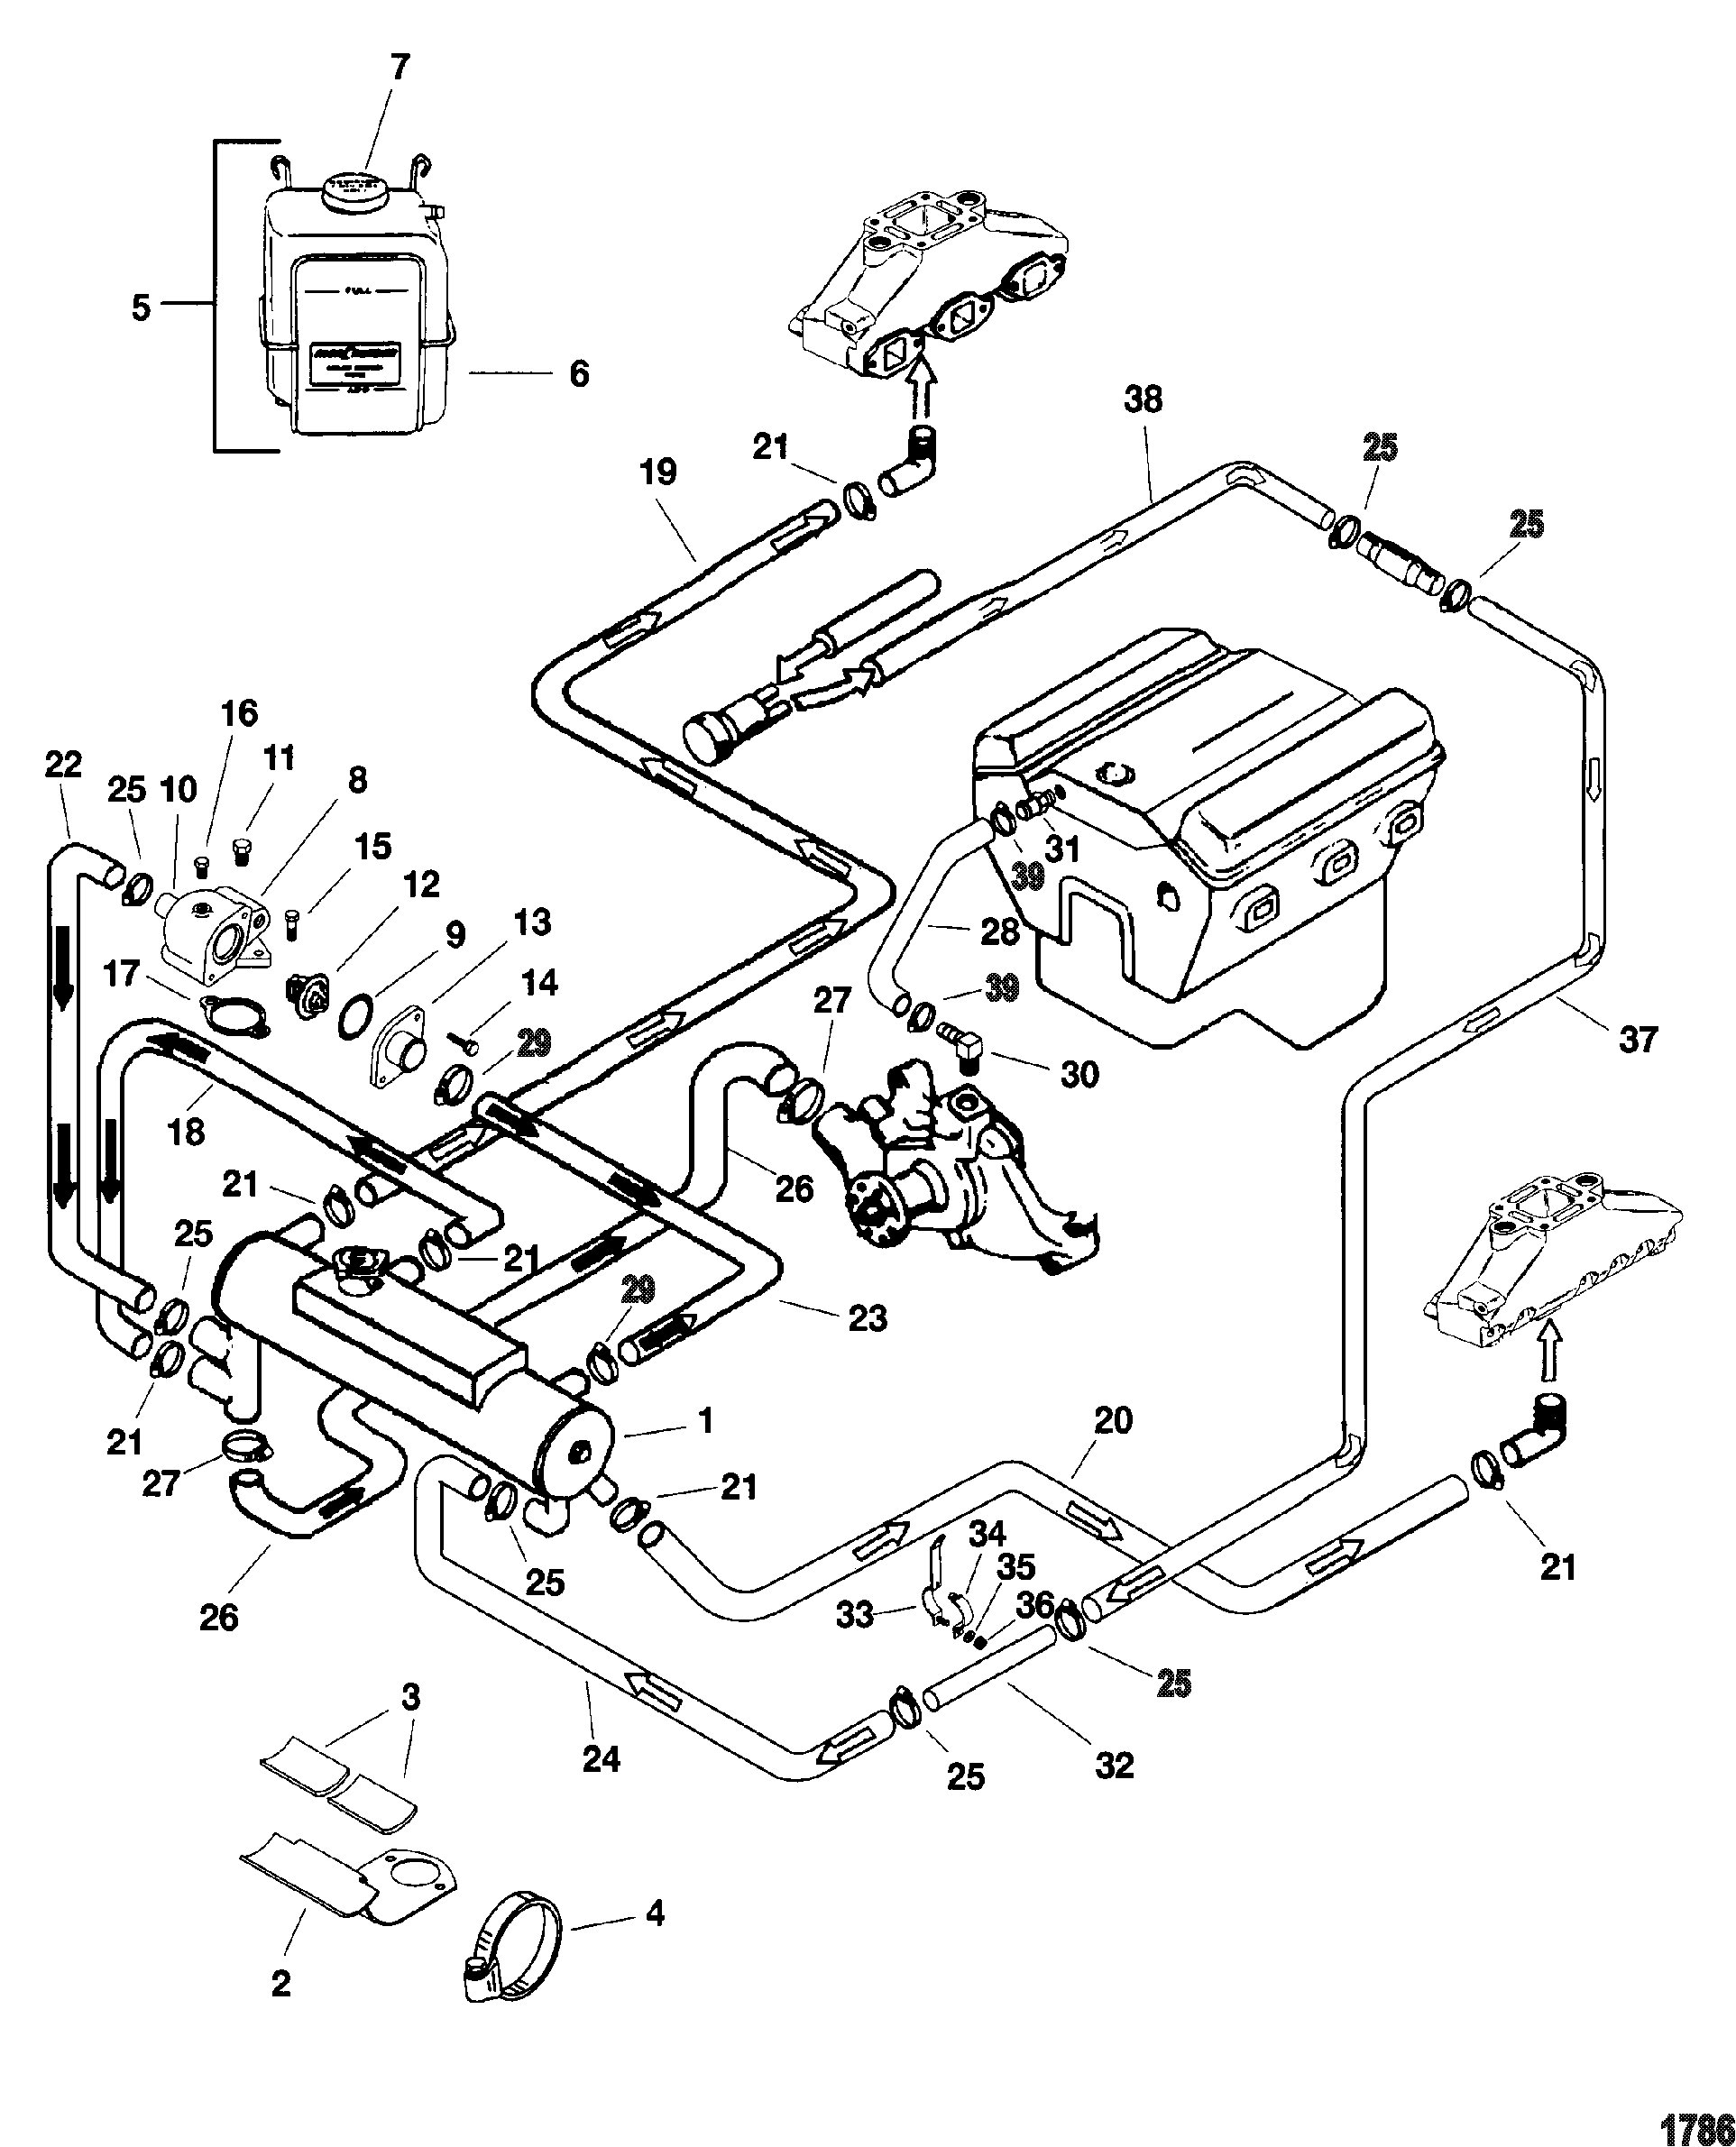 1988 Ford F150 Engine Diagram Thunderbird Questions Need Fuse Box For 1   1140 Ssl Pics Ravishing Together With 1986 Wiring Chevy Truck Besides 19 further 7kf61 Ford Explorer Xlt 2002 Ford Explorer Xlt Developed additionally 2003 Mercury Sable Engine Diagram Spark Plugs in addition 438113 Ecm Location Removal furthermore Discussion T11920 ds659607. on 2005 ford escape engine diagram